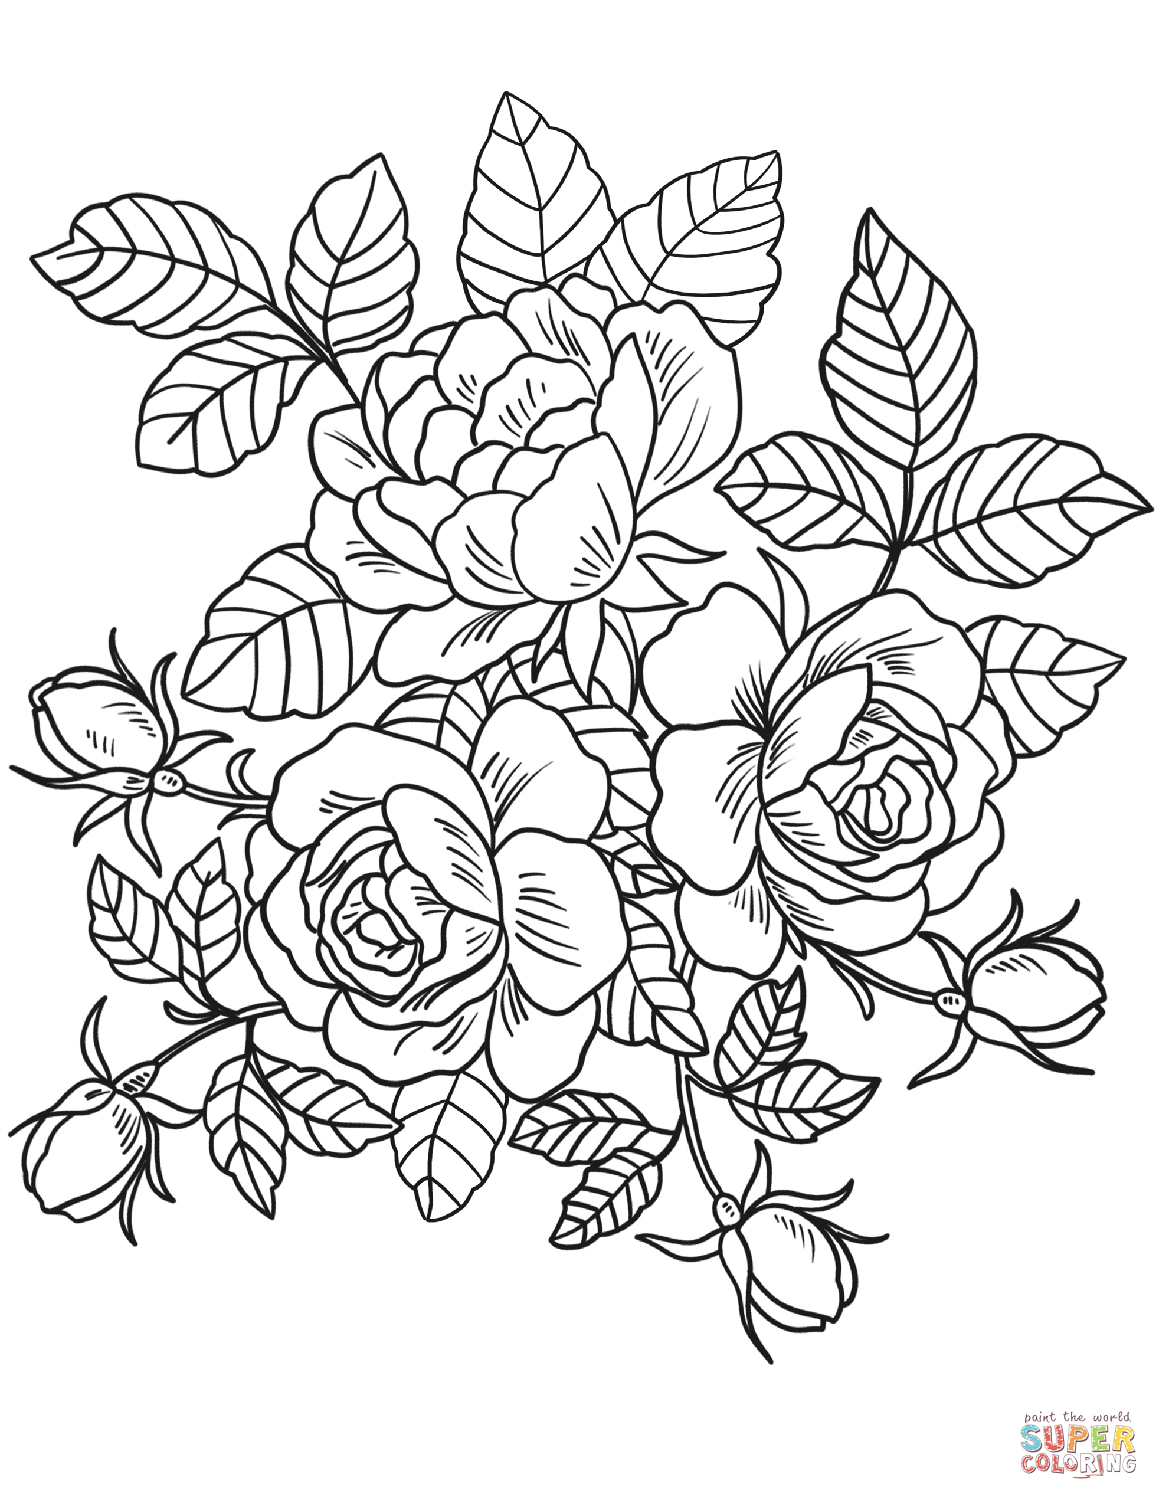 rose coloring pictures get this online roses coloring pages for adults 88275 pictures coloring rose